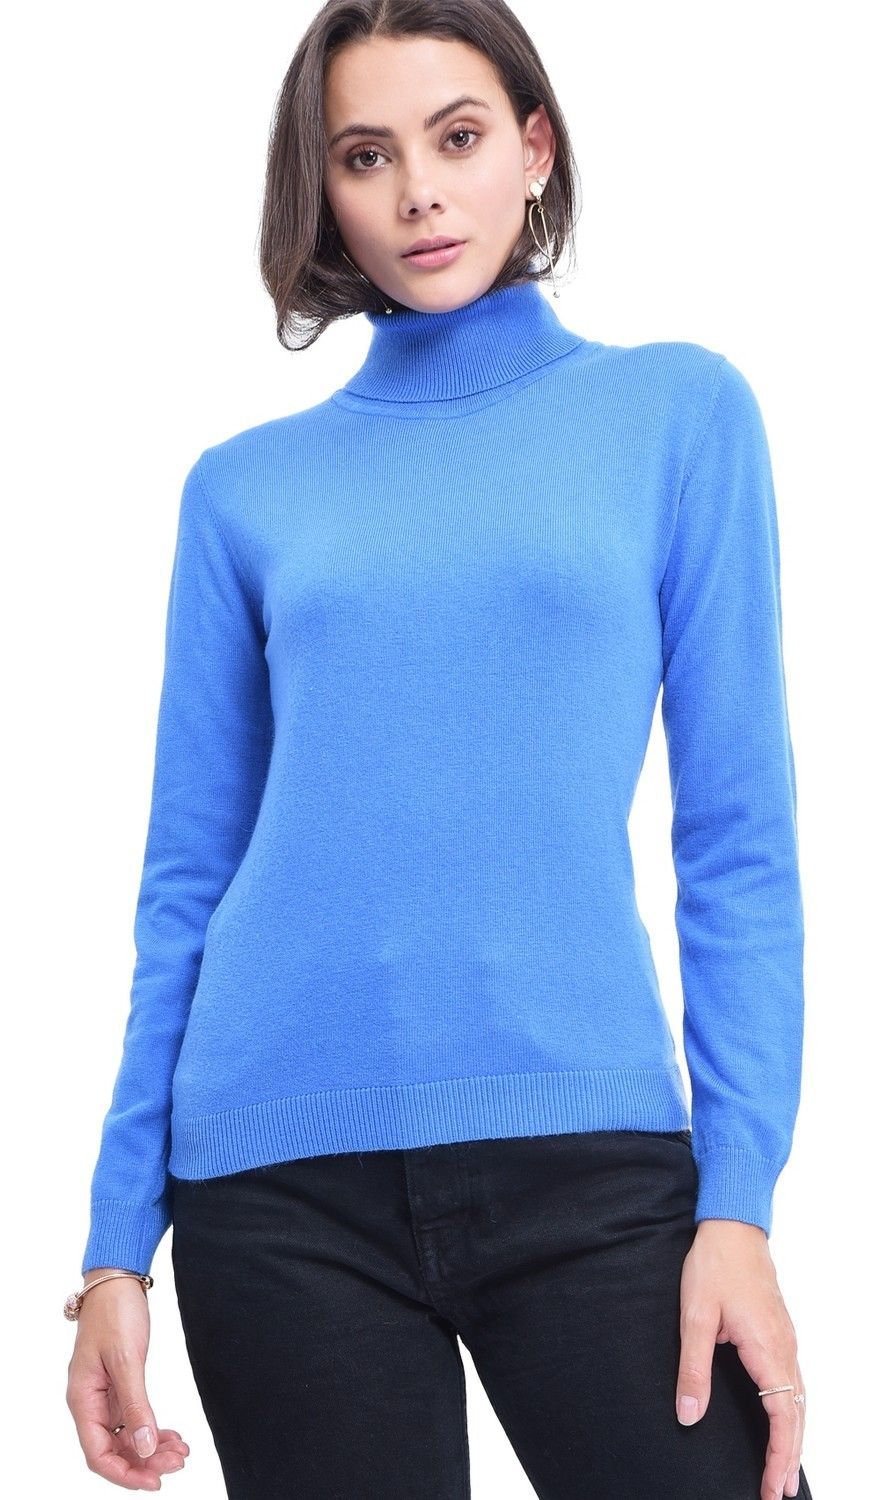 Assuili Turtleneck Sweater in Blue